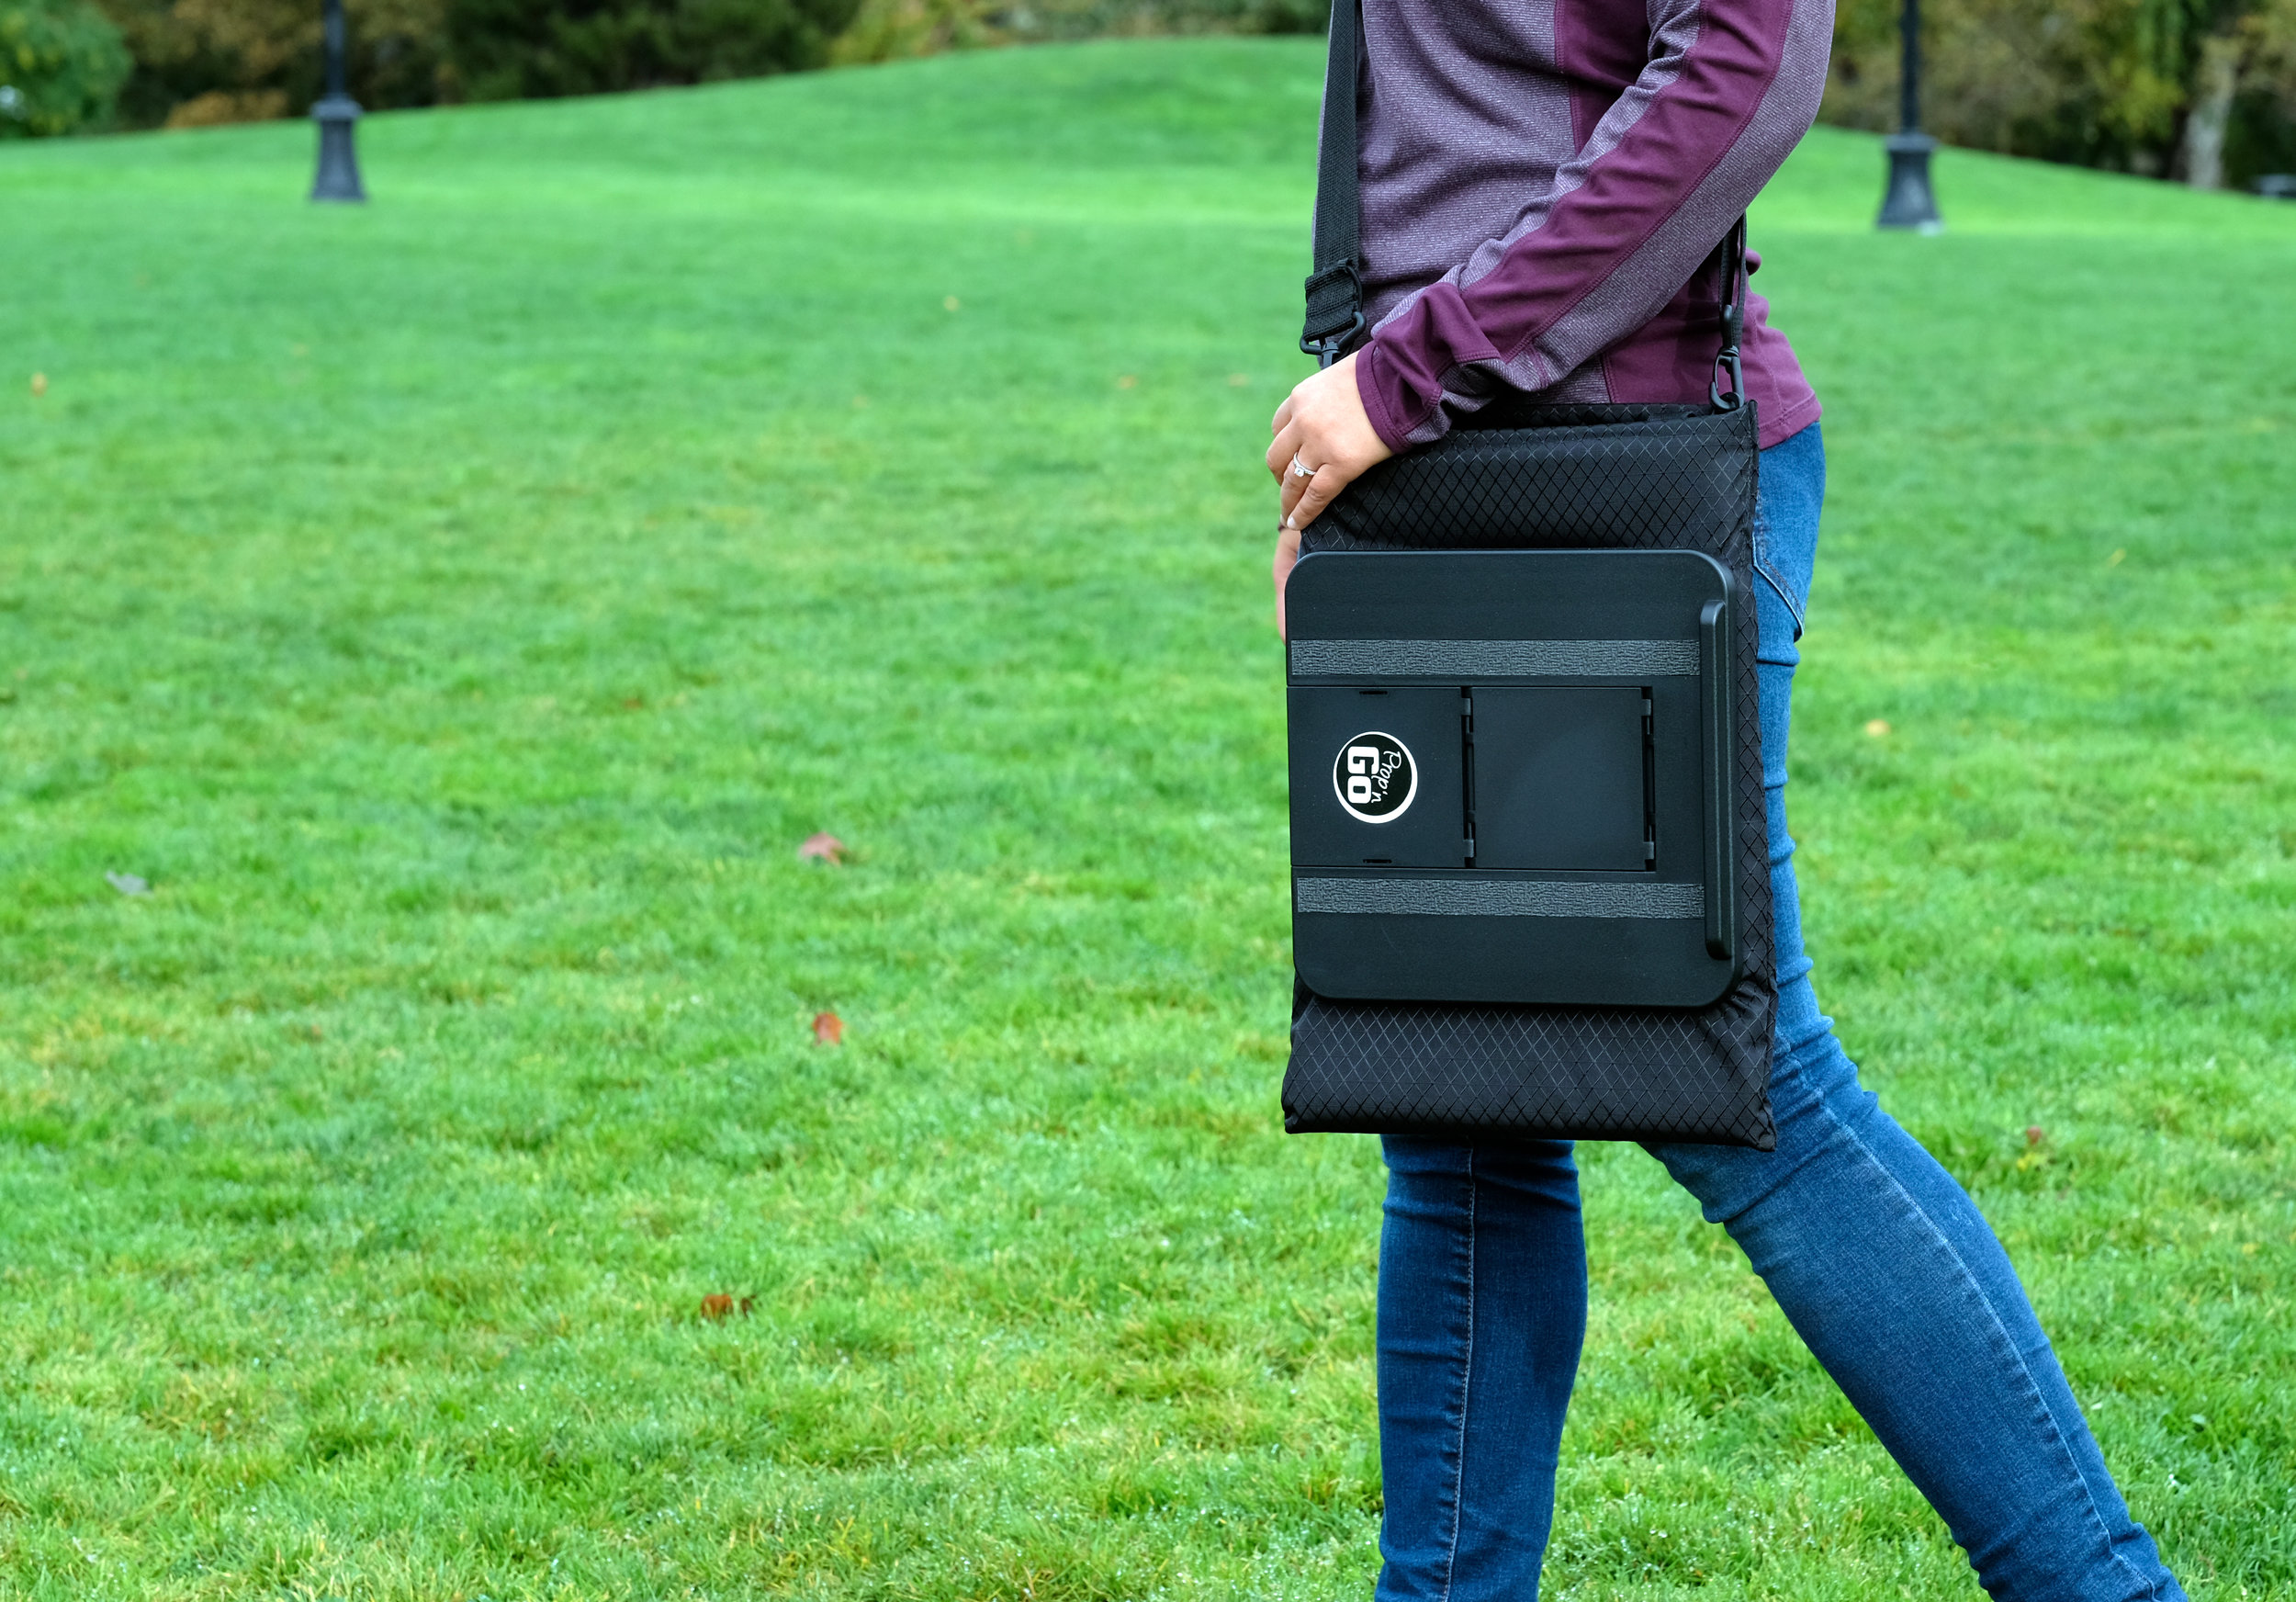 pngo-tote-in-the-park.jpg